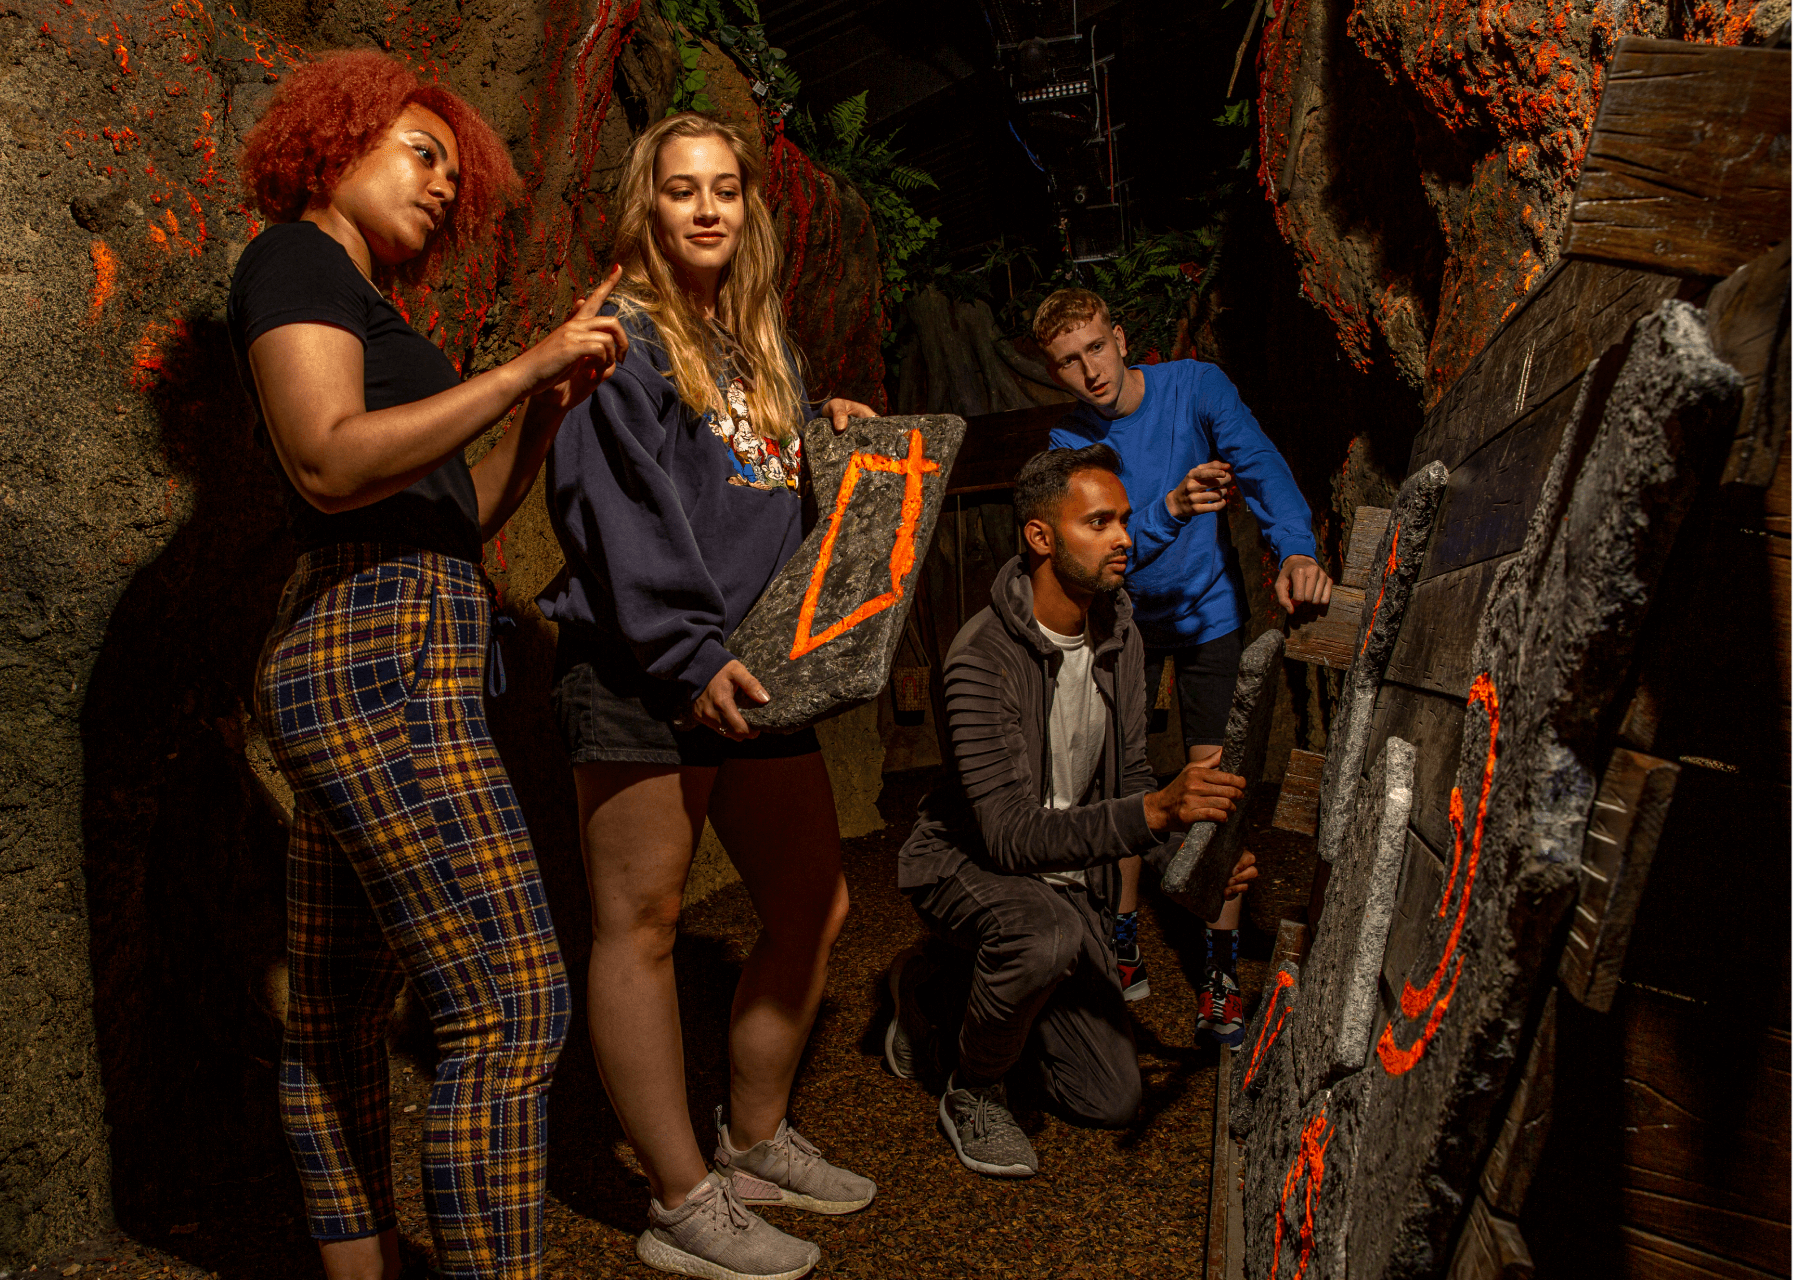 Jungle Escape Puzzle Escape Room, Group solving a puzzle